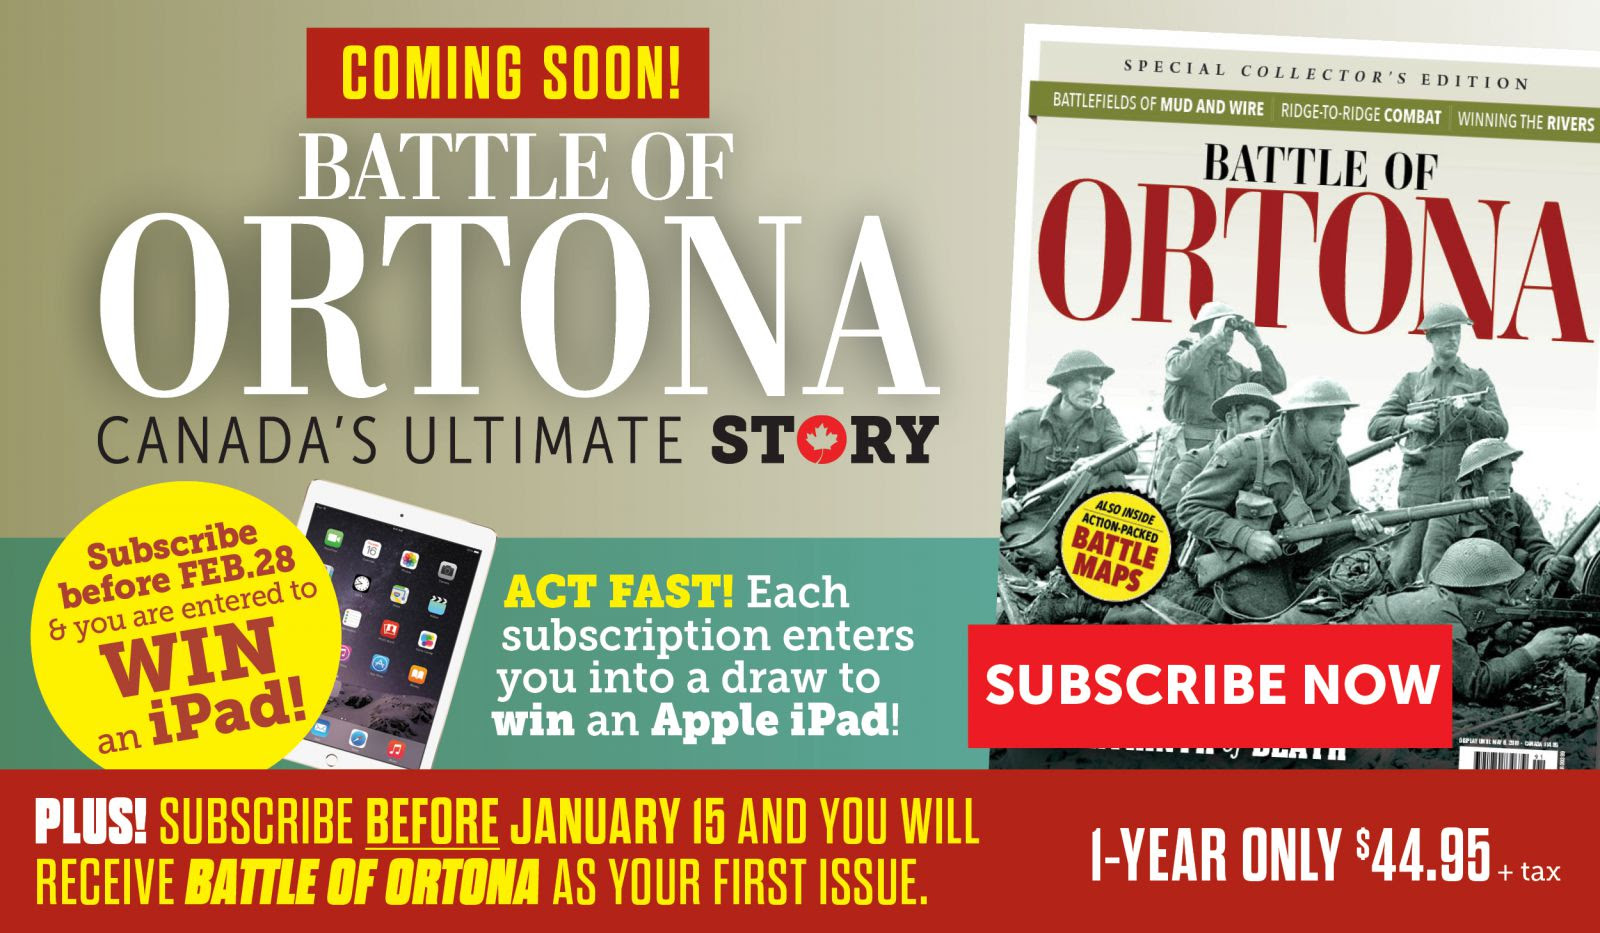 Act Fast! Subscribe to Canada's Ultimate Story